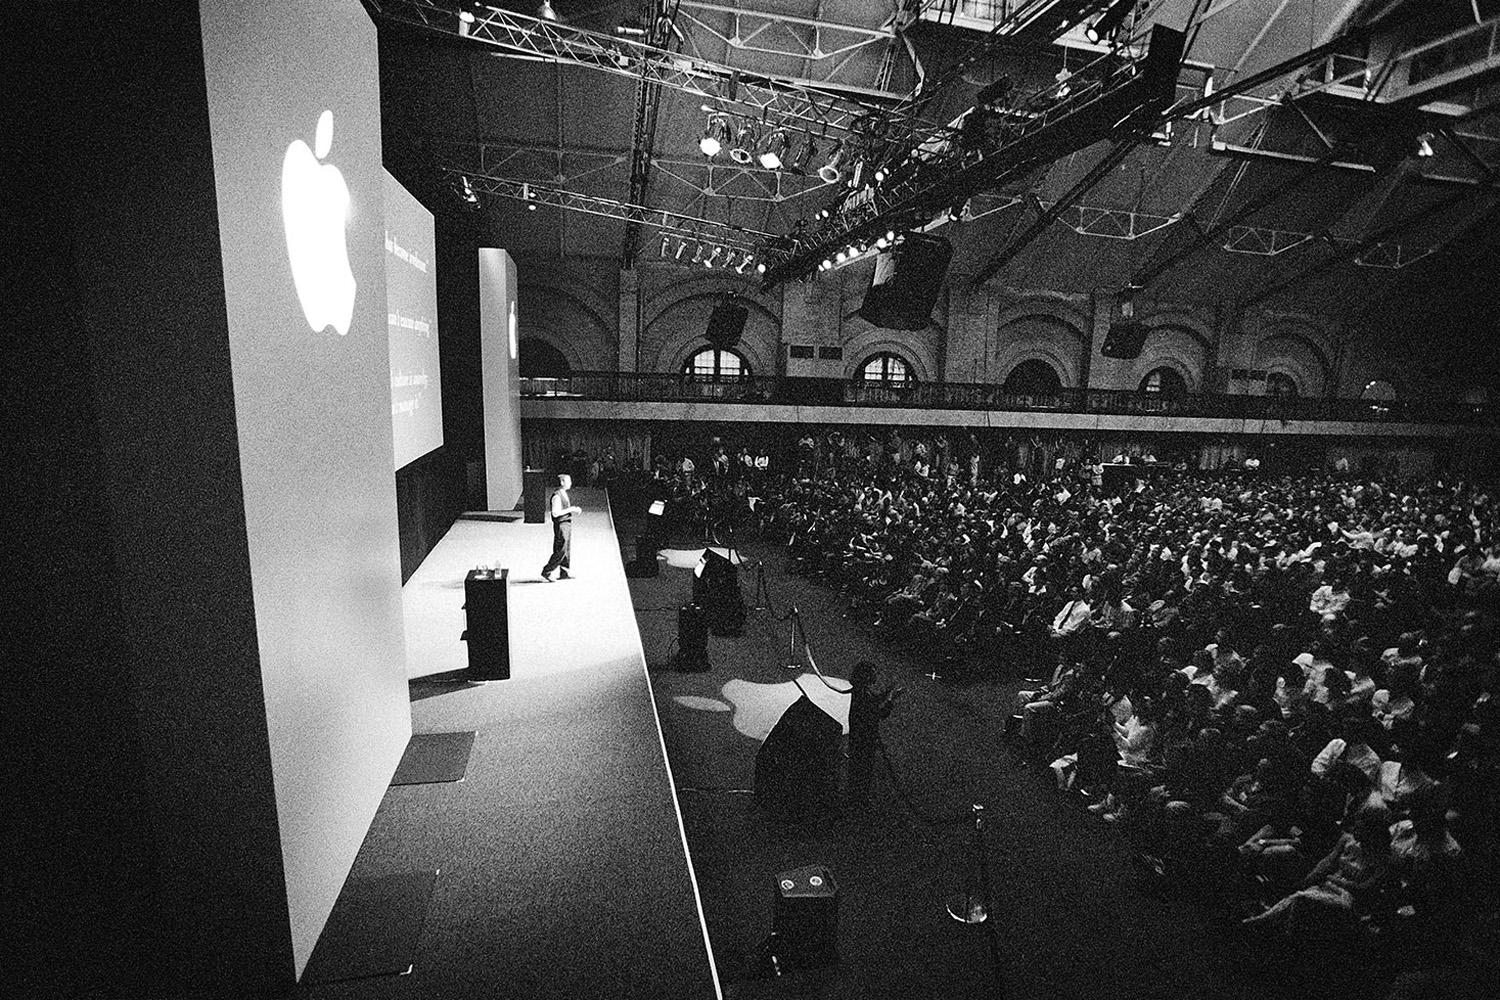 Jobs delivers remarks at Boston's 1997 Macworld Expo.